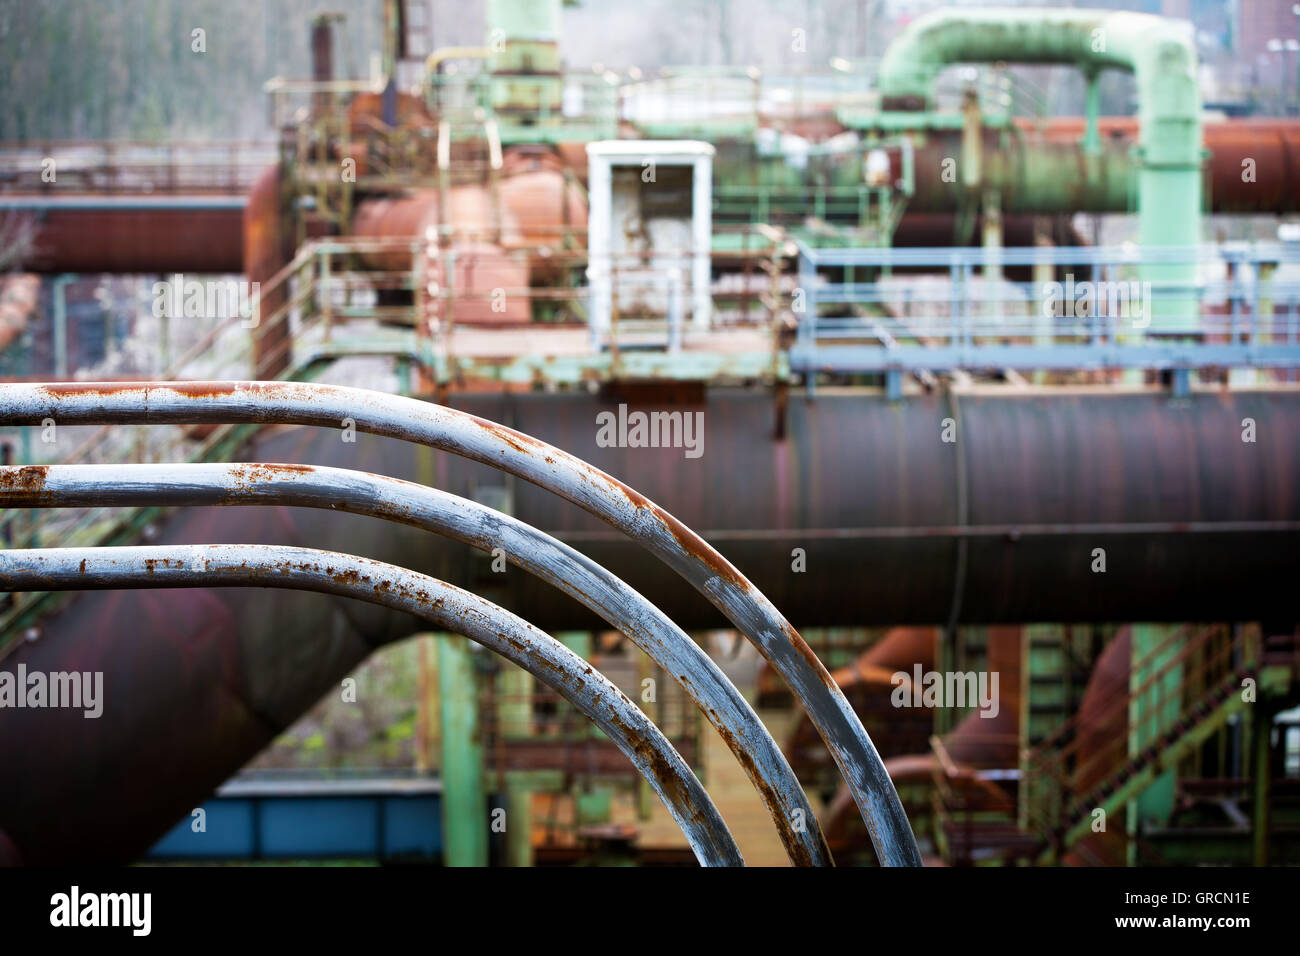 Heavy Industry, Industrial Plant Stock Photo